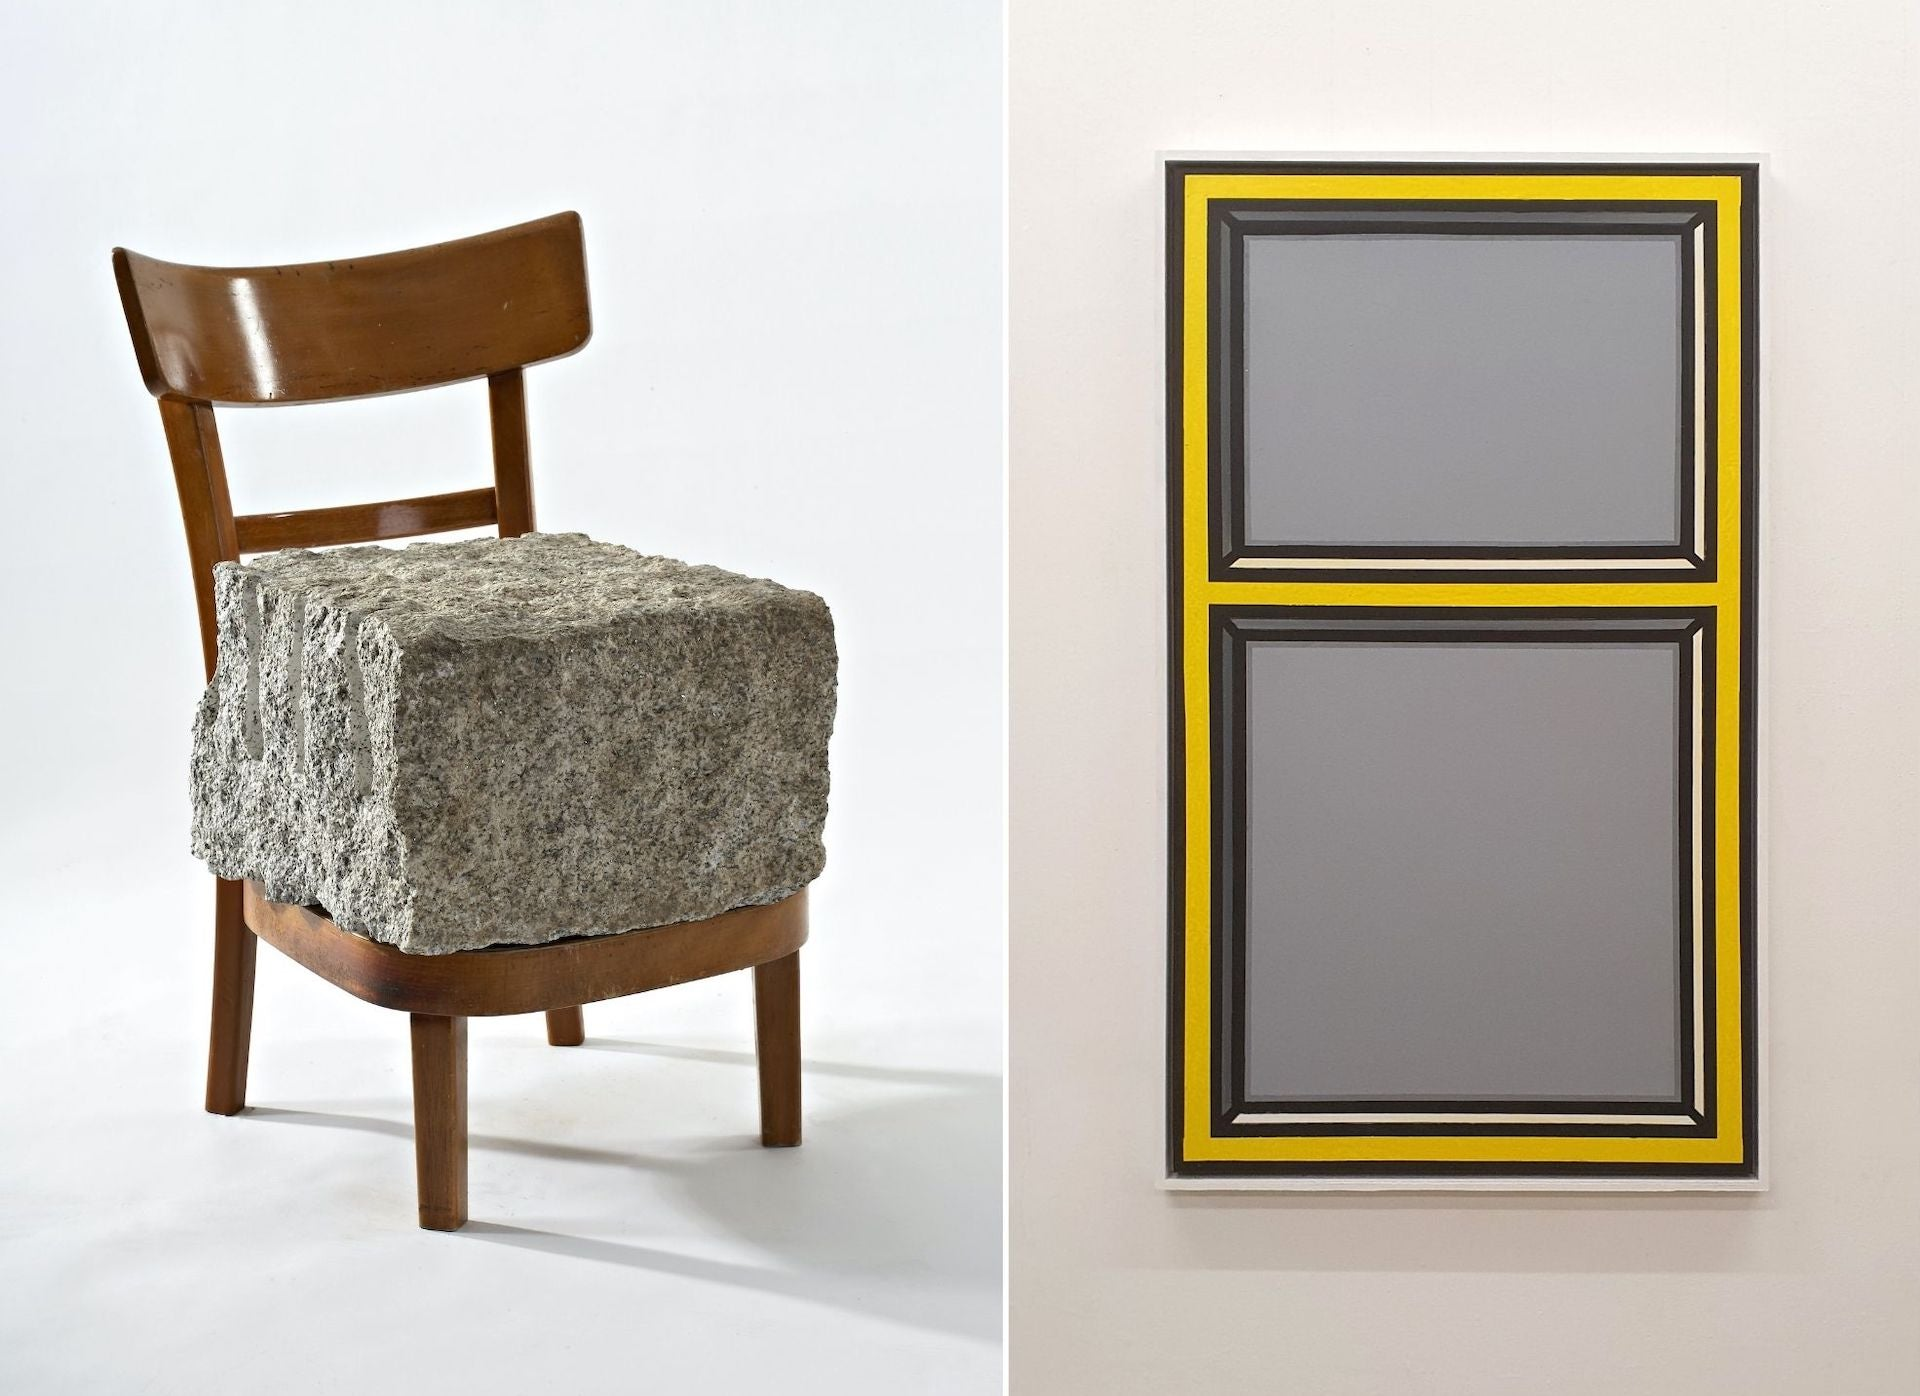 Chip on the Shoulder by Rolf Sachs, 1999, and Painted Yellow Window by Richard Woods, c. 2019. Photos courtesy of ammann//projects